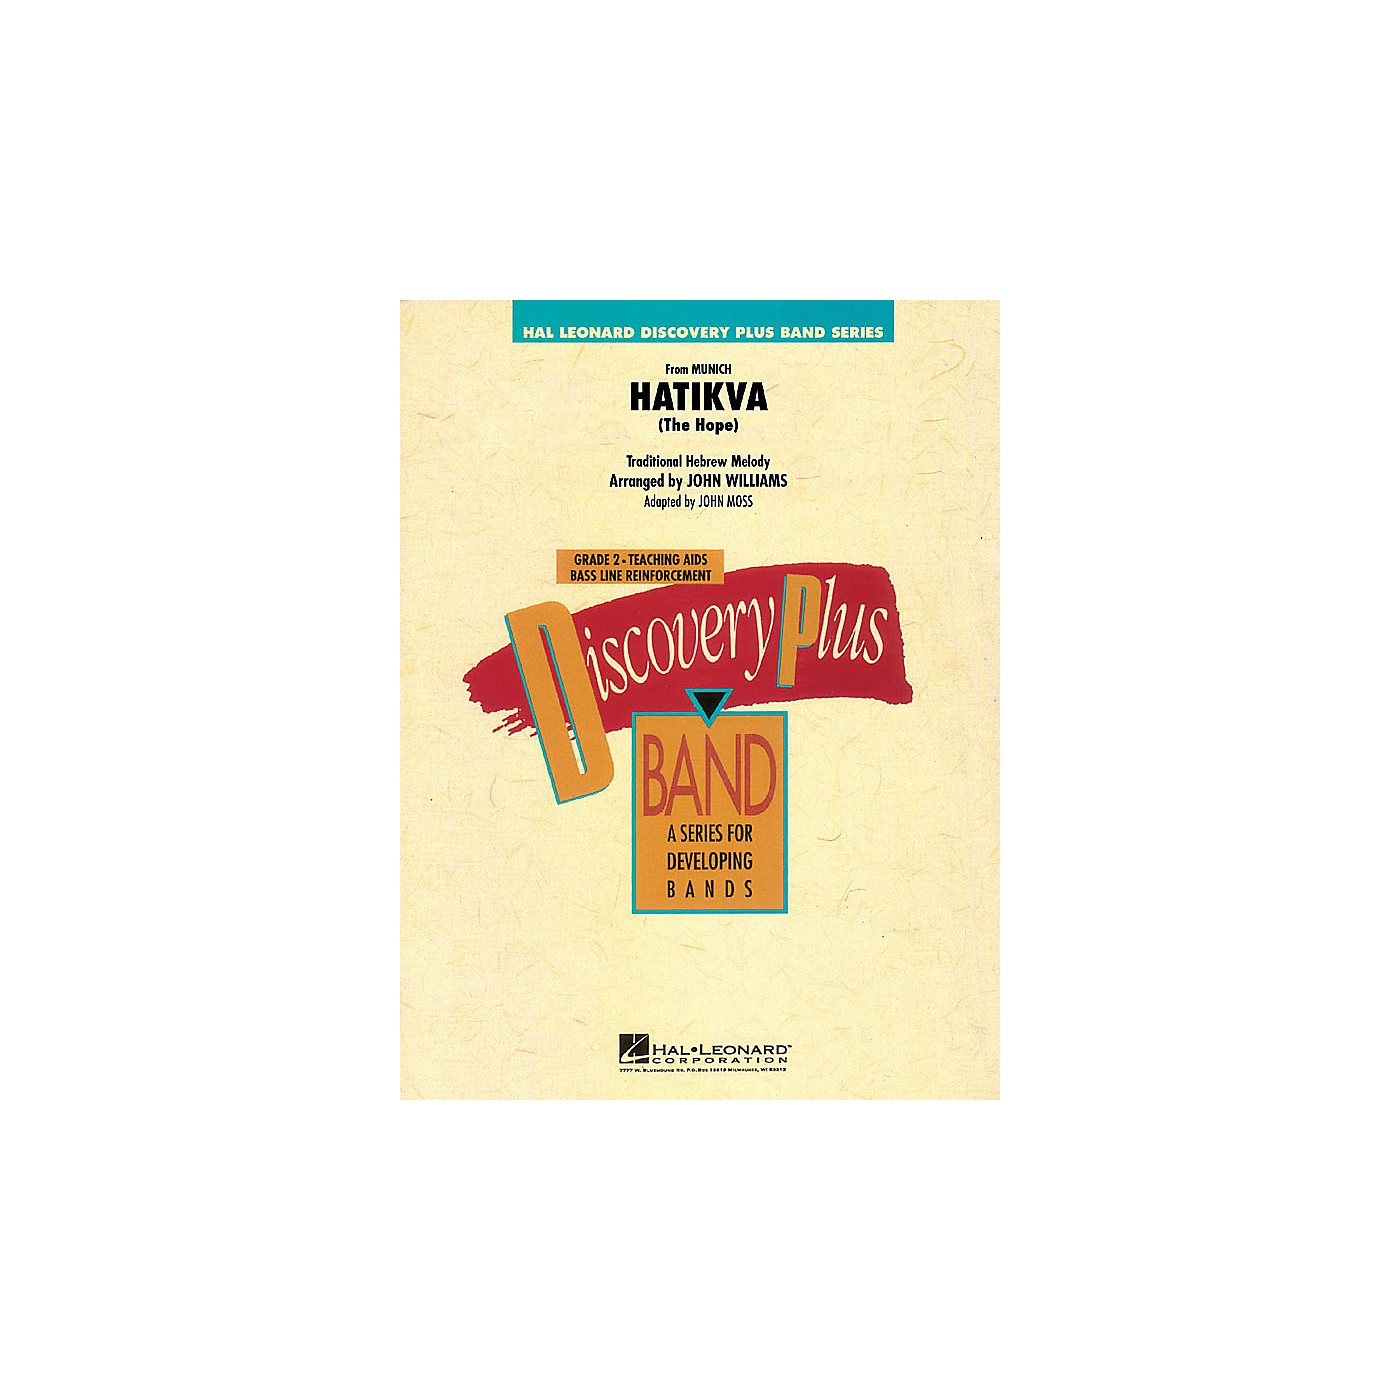 Hal Leonard Hatikva (The Hope) (from Munich) - Discovery Plus Concert Band Series Level 2 arranged by John Moss thumbnail